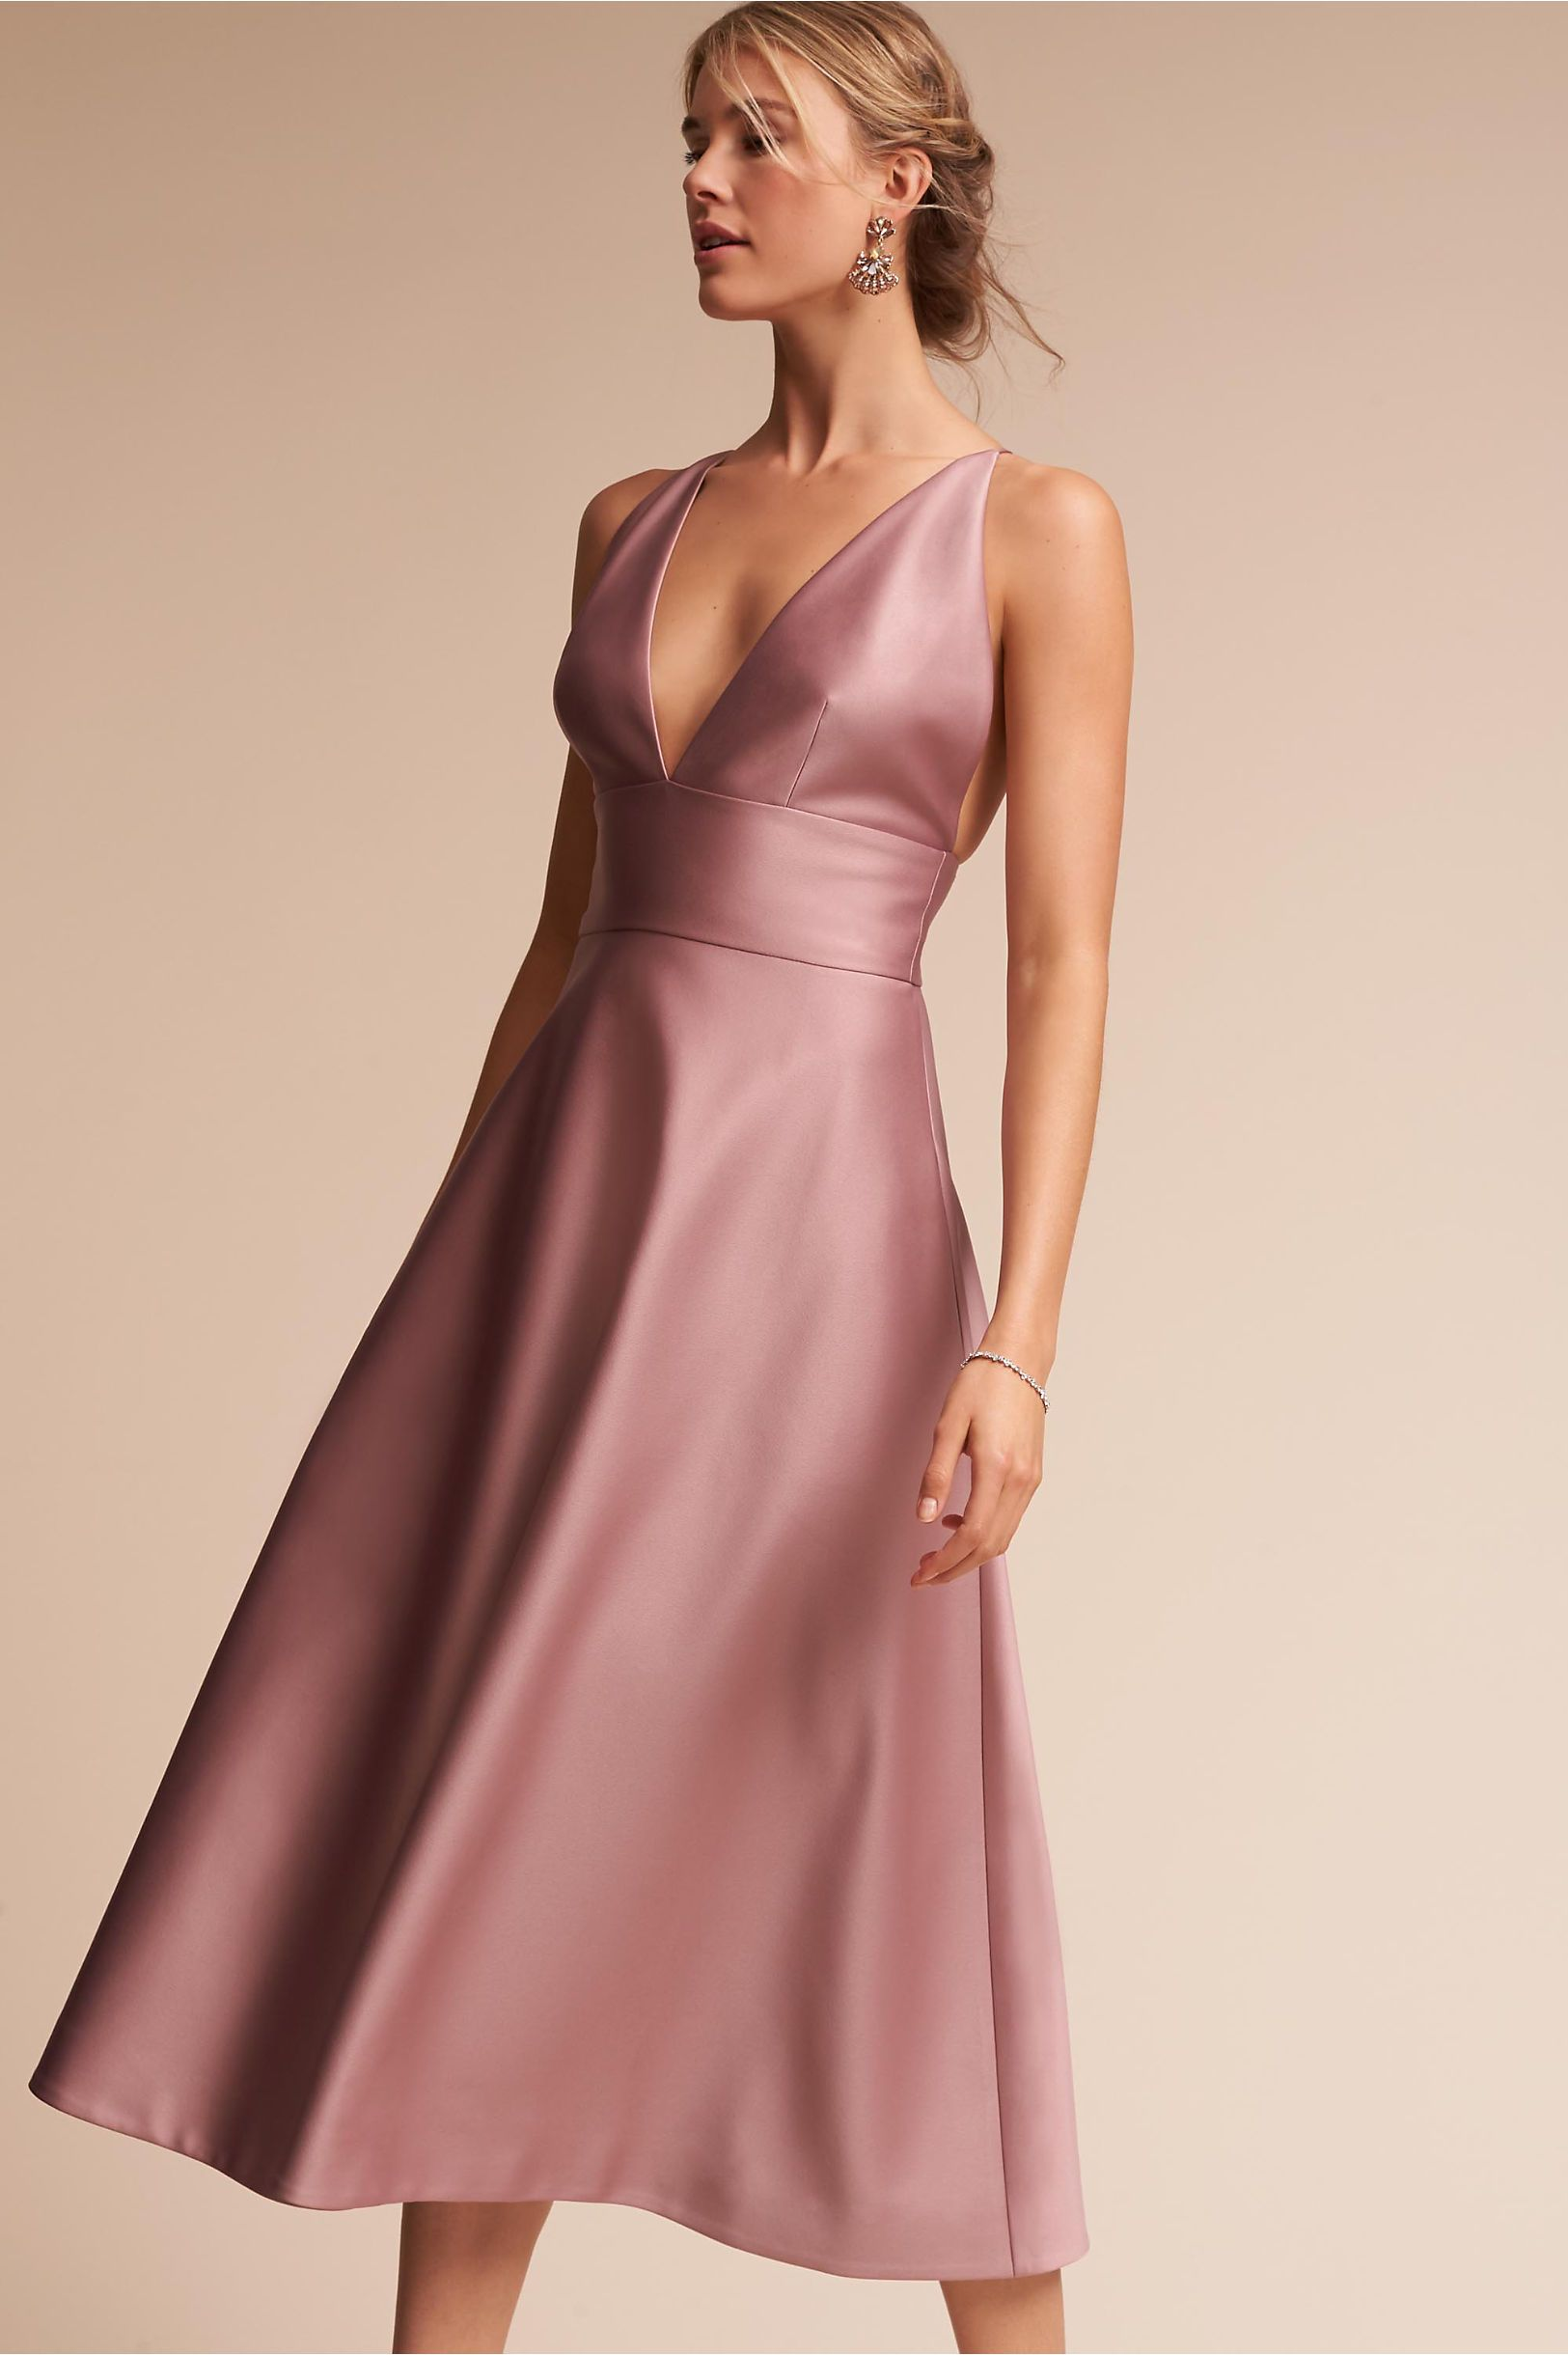 BHLDN\'s Hitherto Shelby Dress in Rose Quartz | Eterno femenino ...